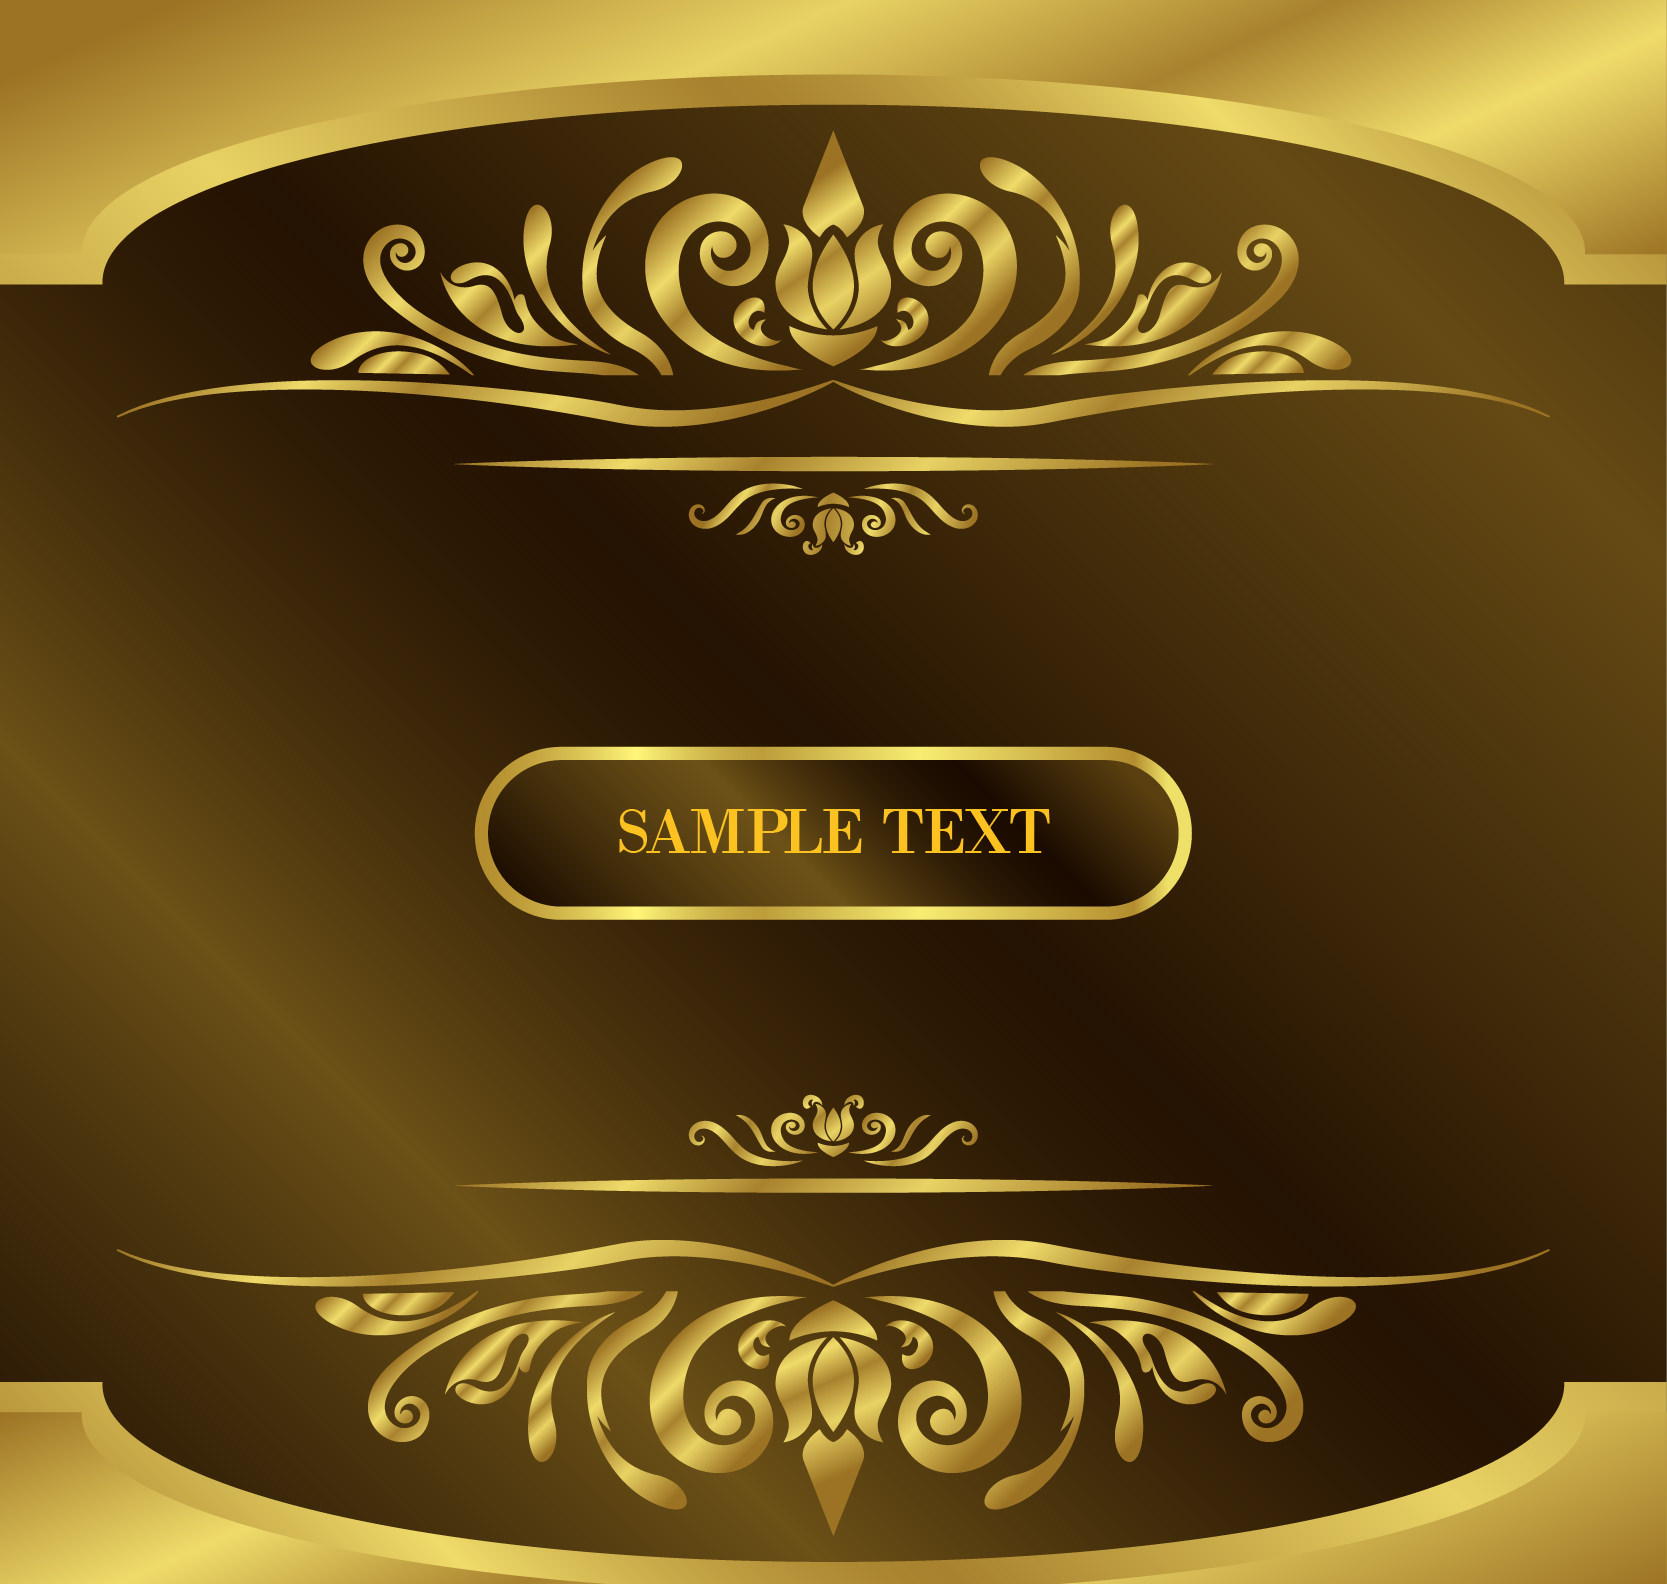 vintage gold background with text